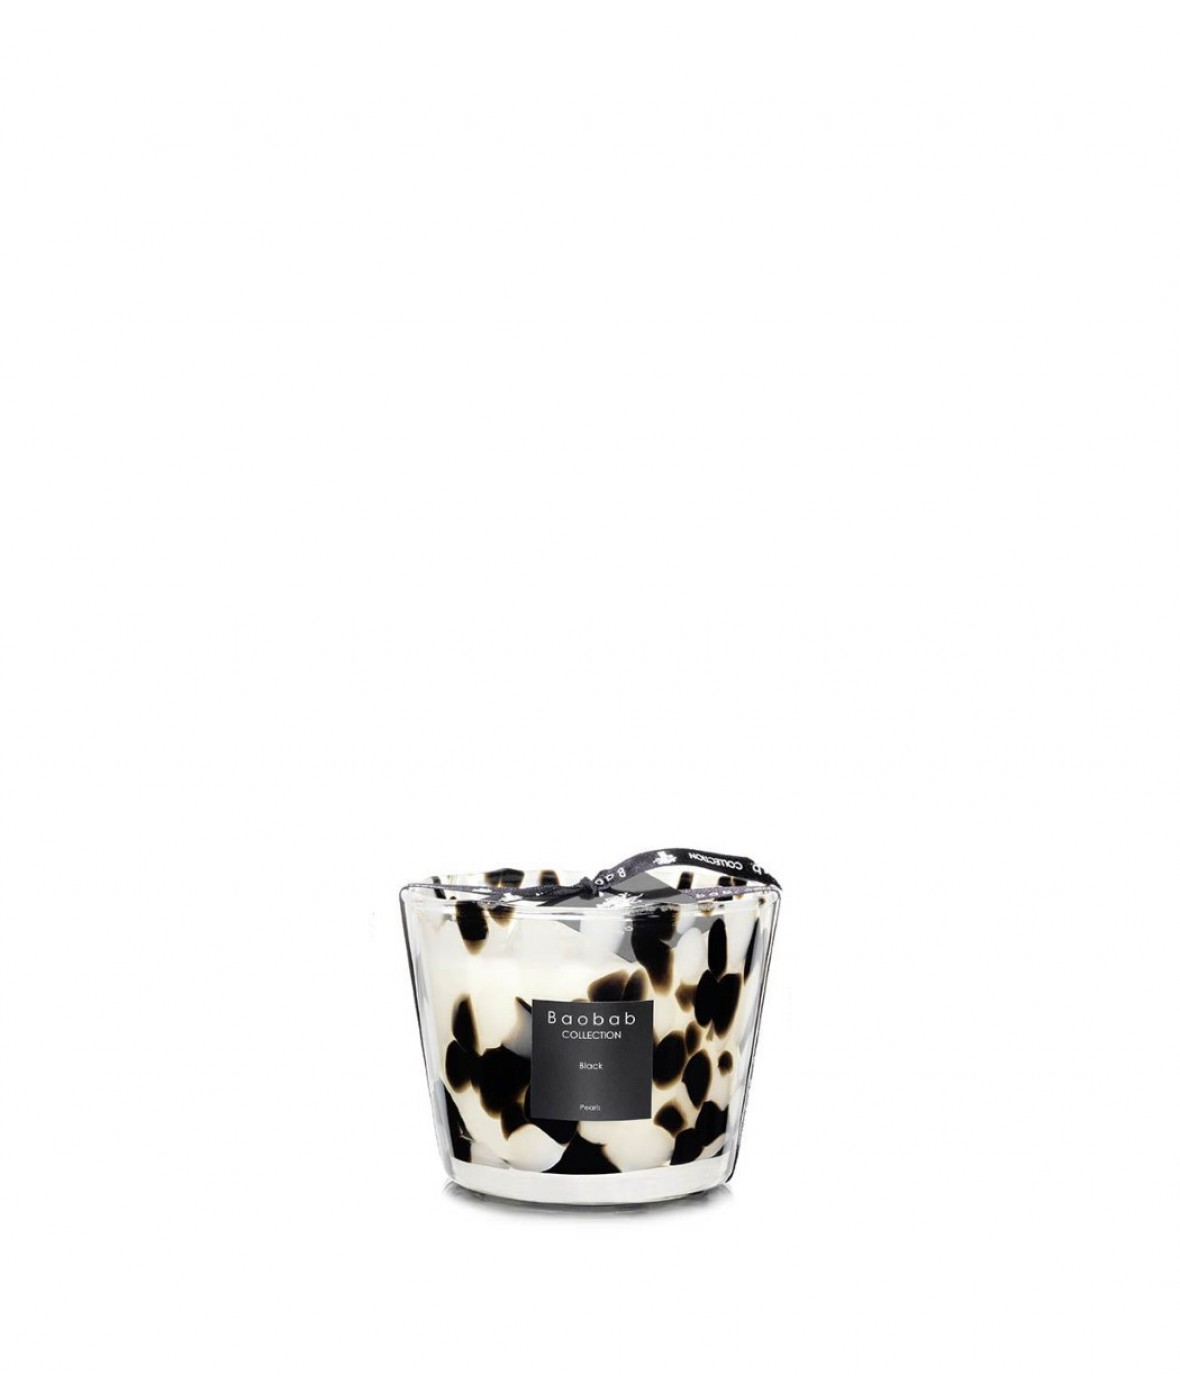 Baobap Scented Candle Black Pearls (Small)